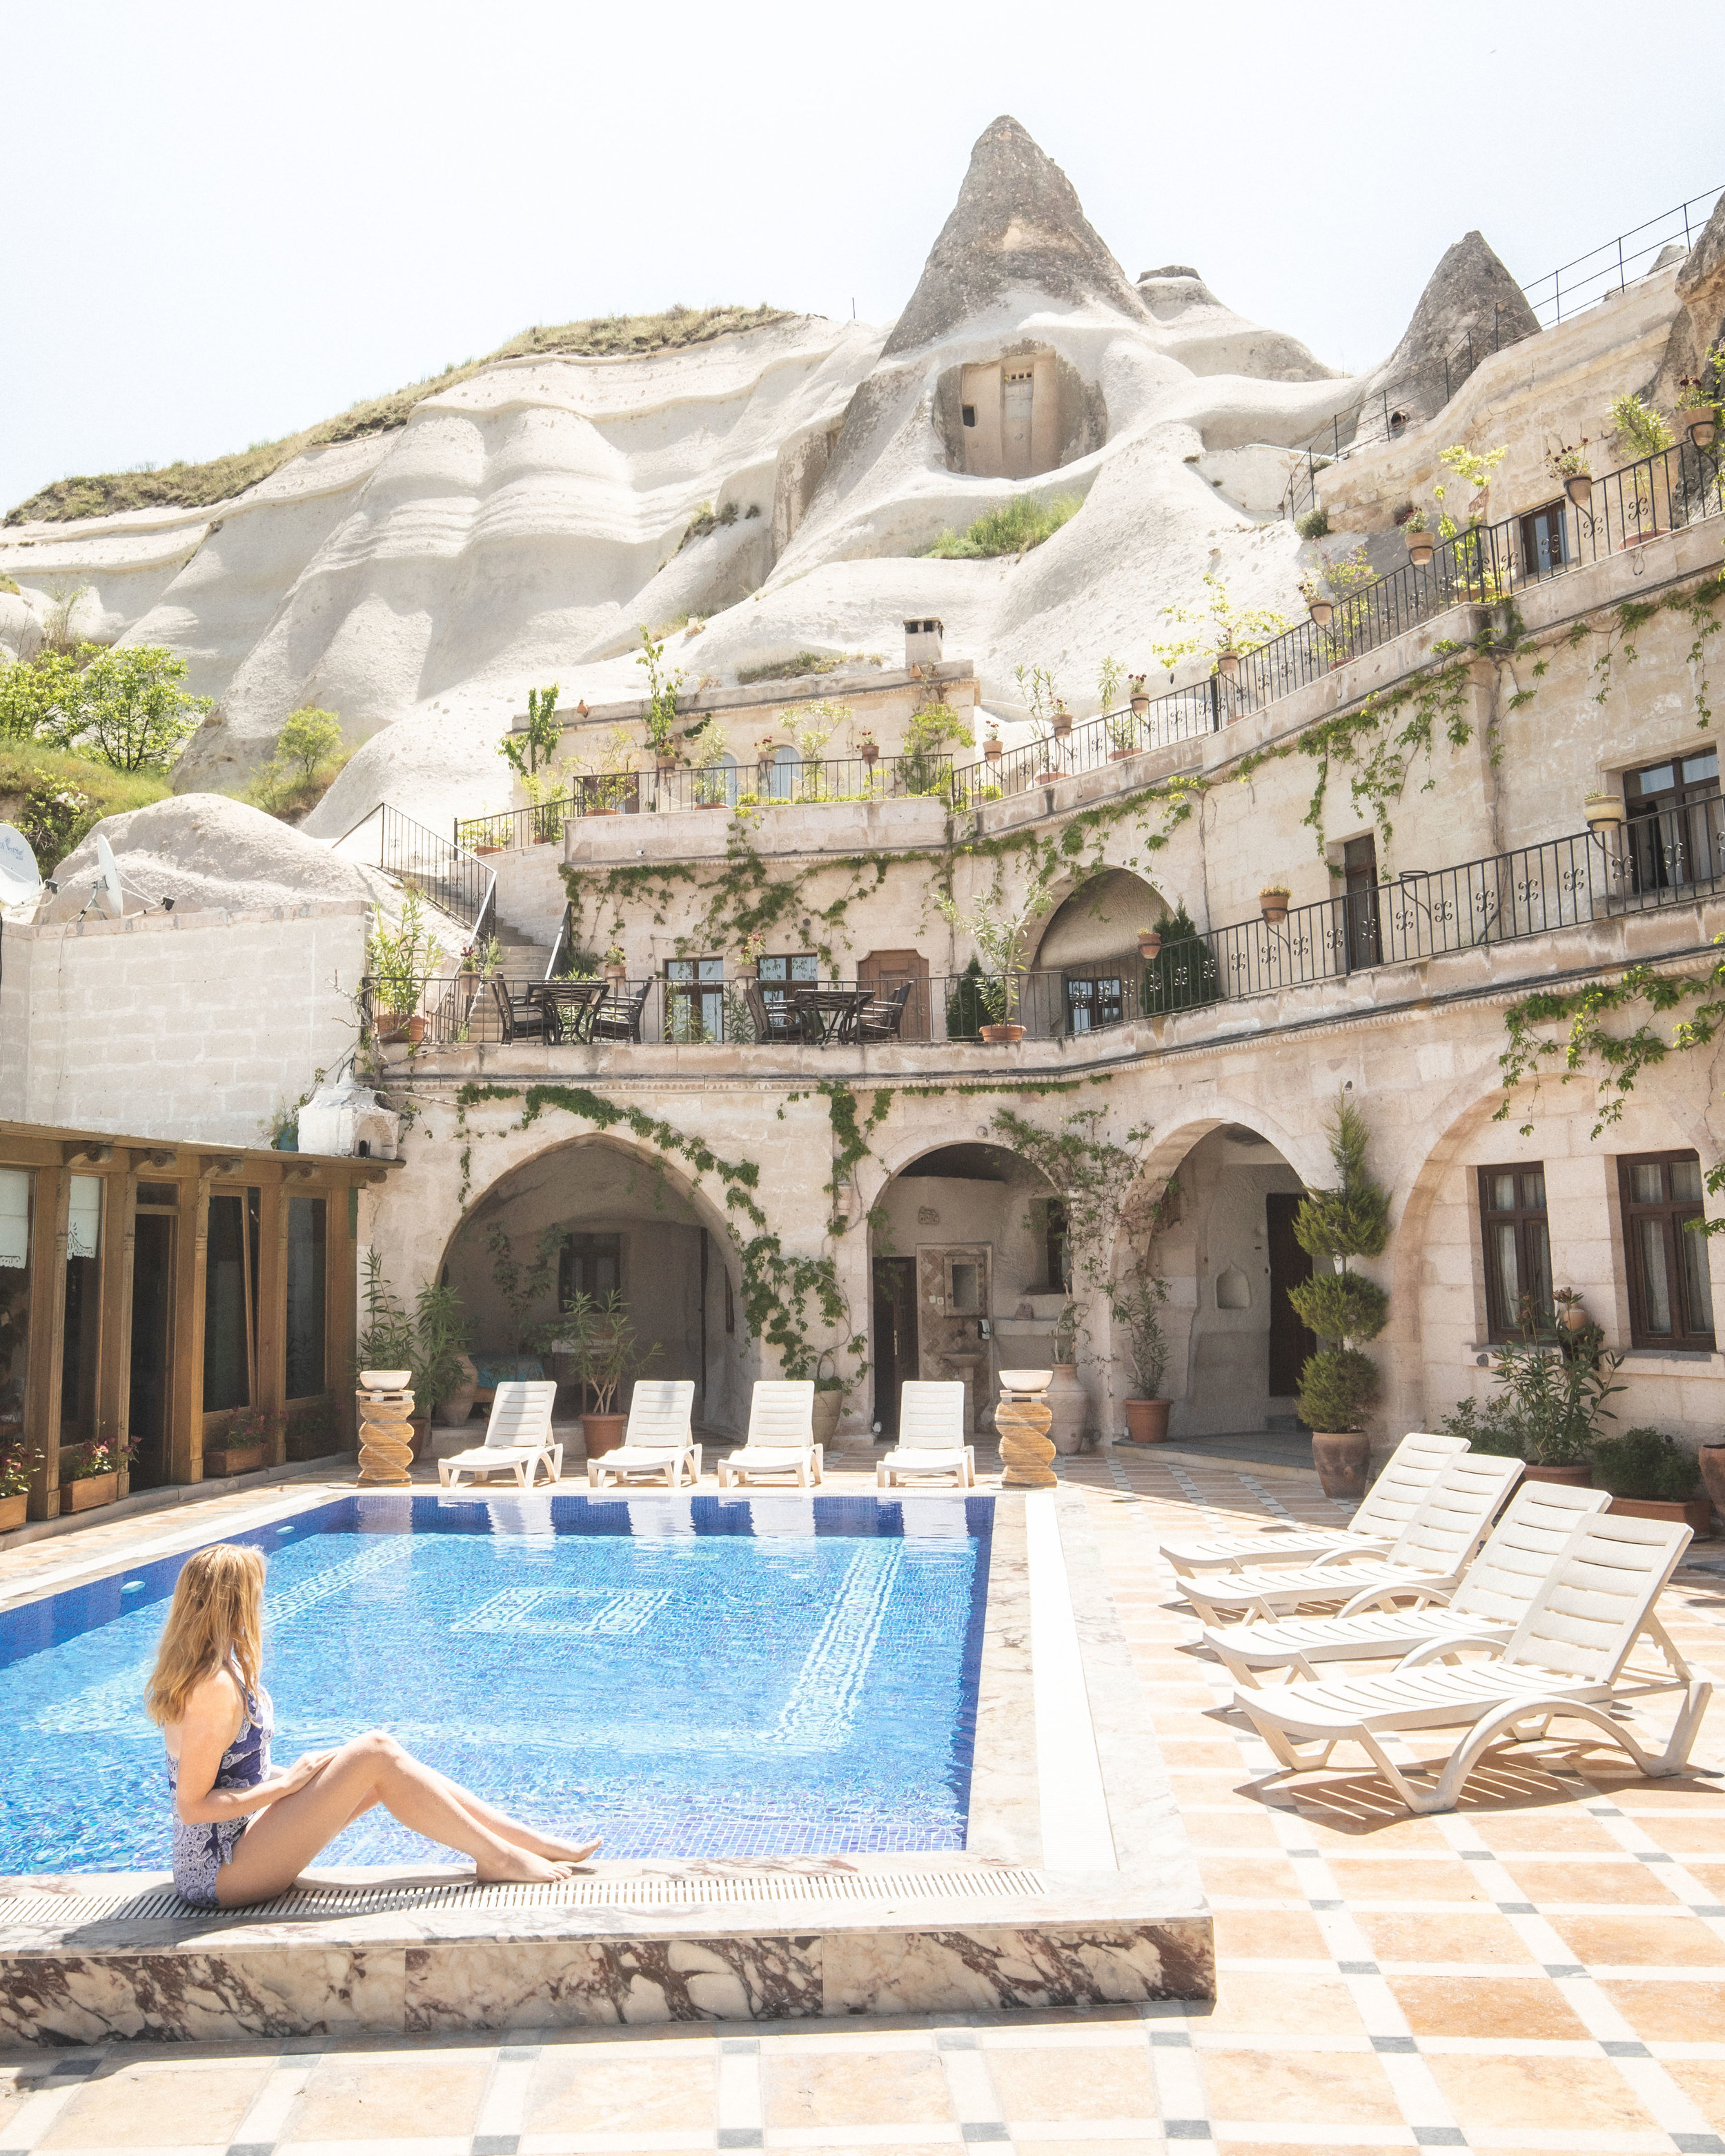 Local Cave House - Where to stay in Cappadocia